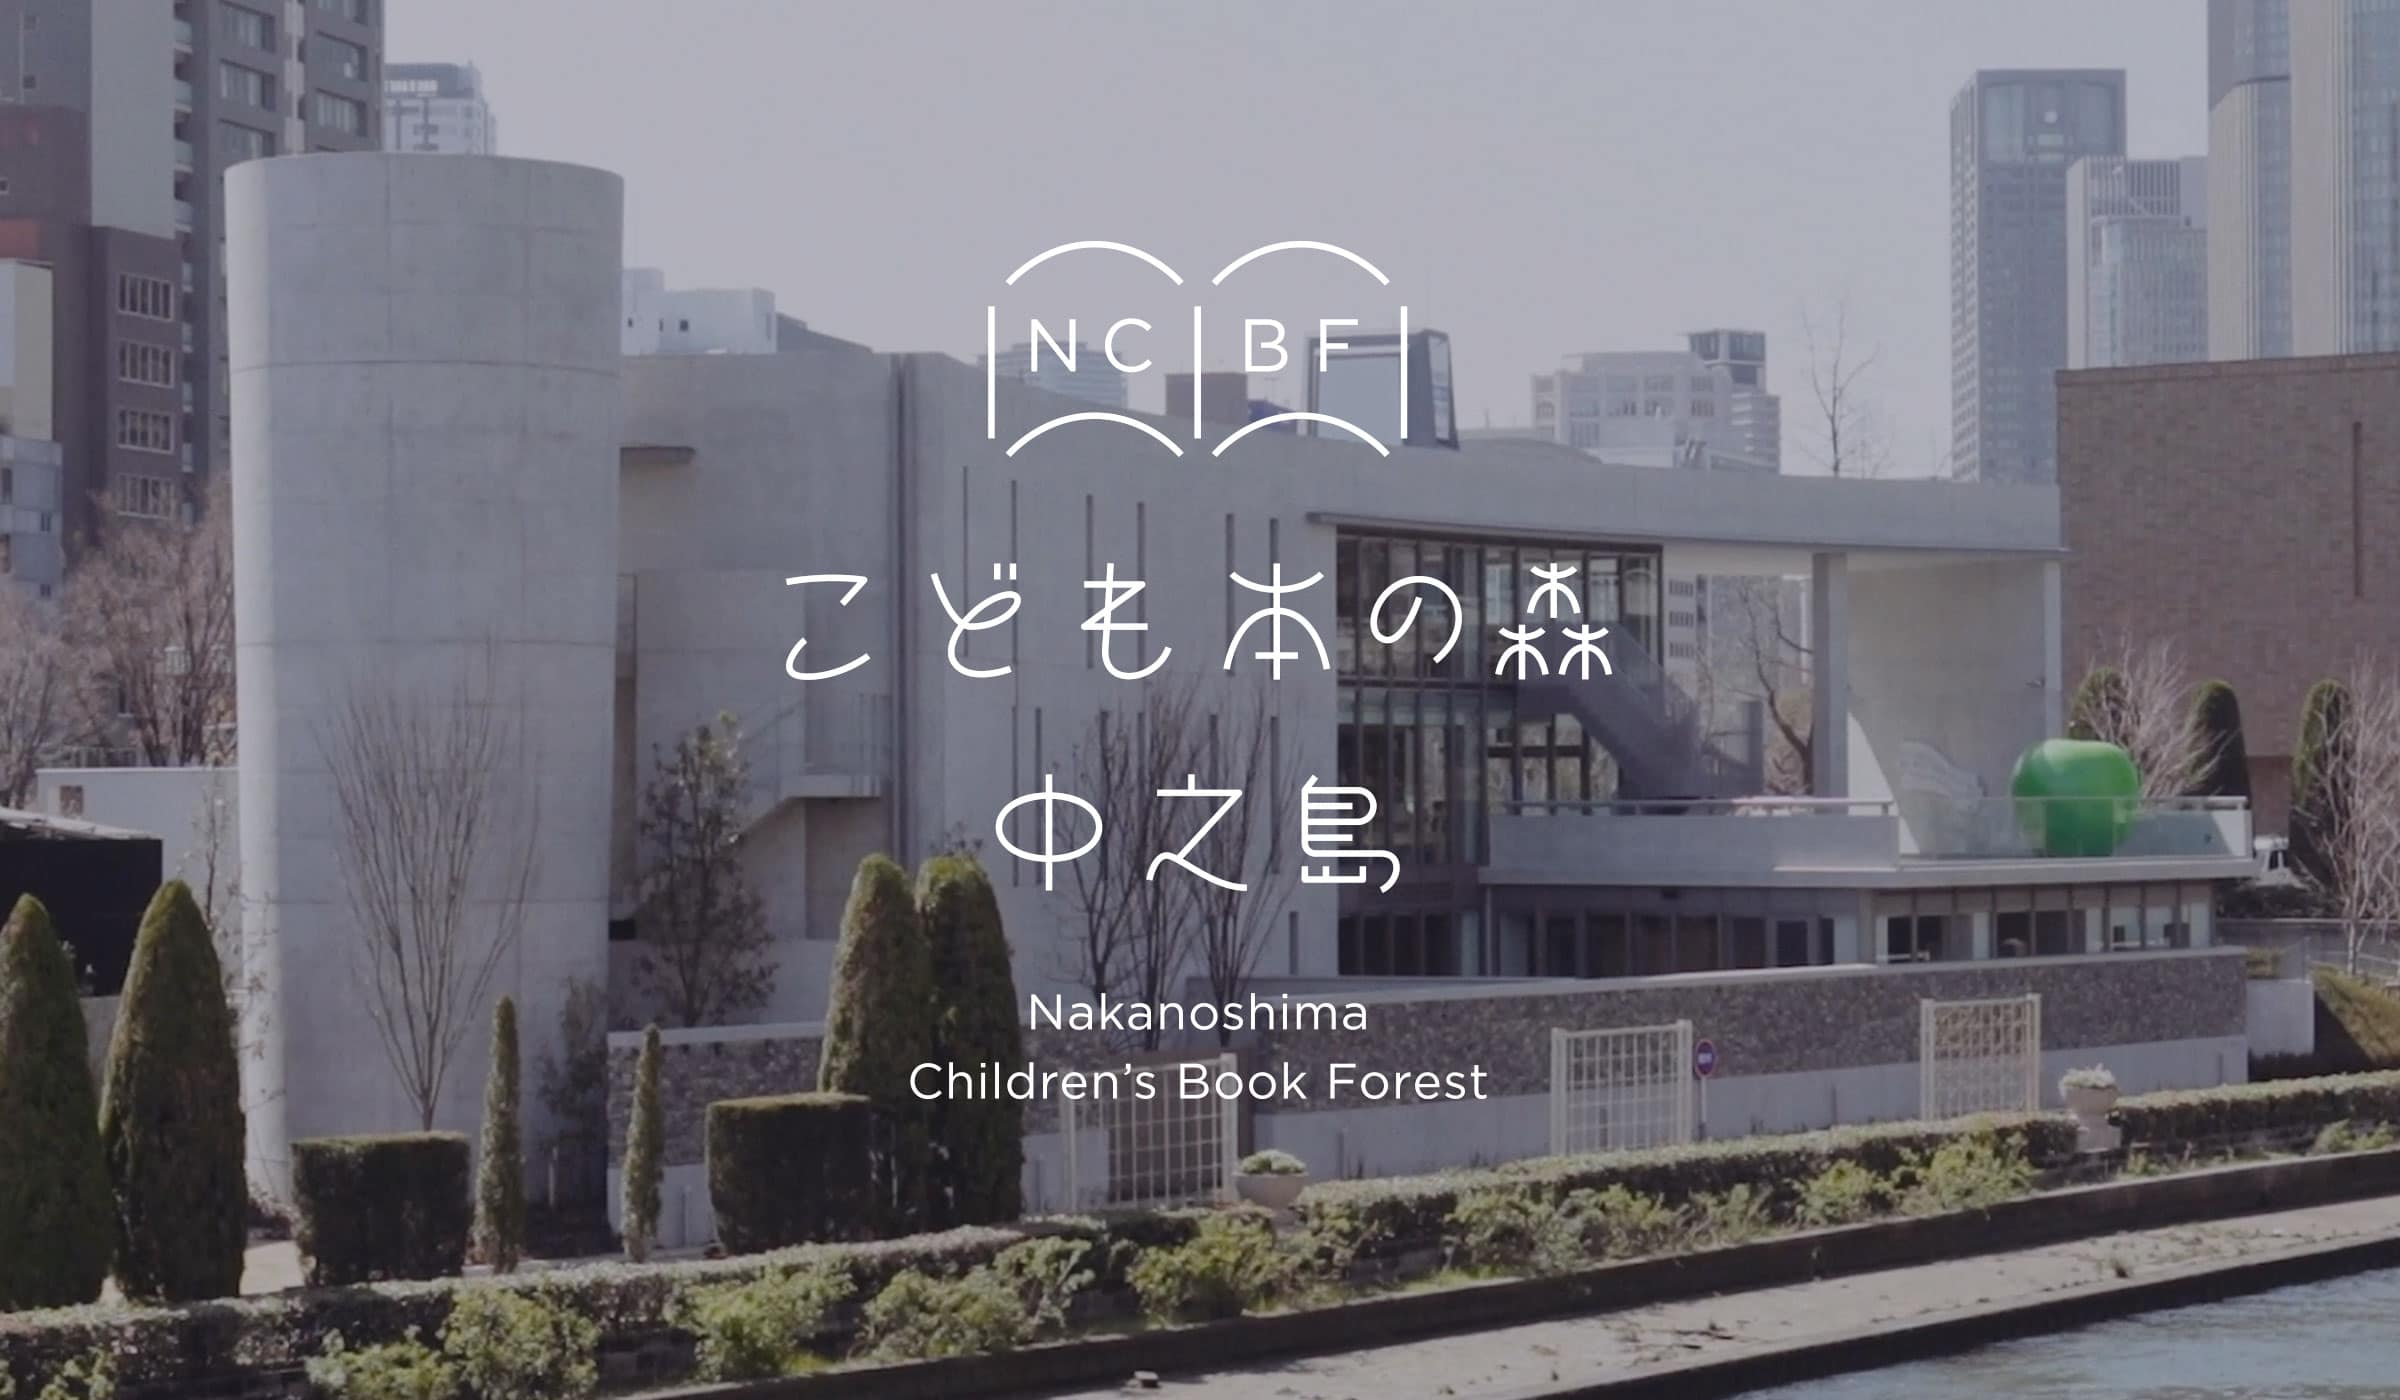 Nakanoshima Children's Book Forest